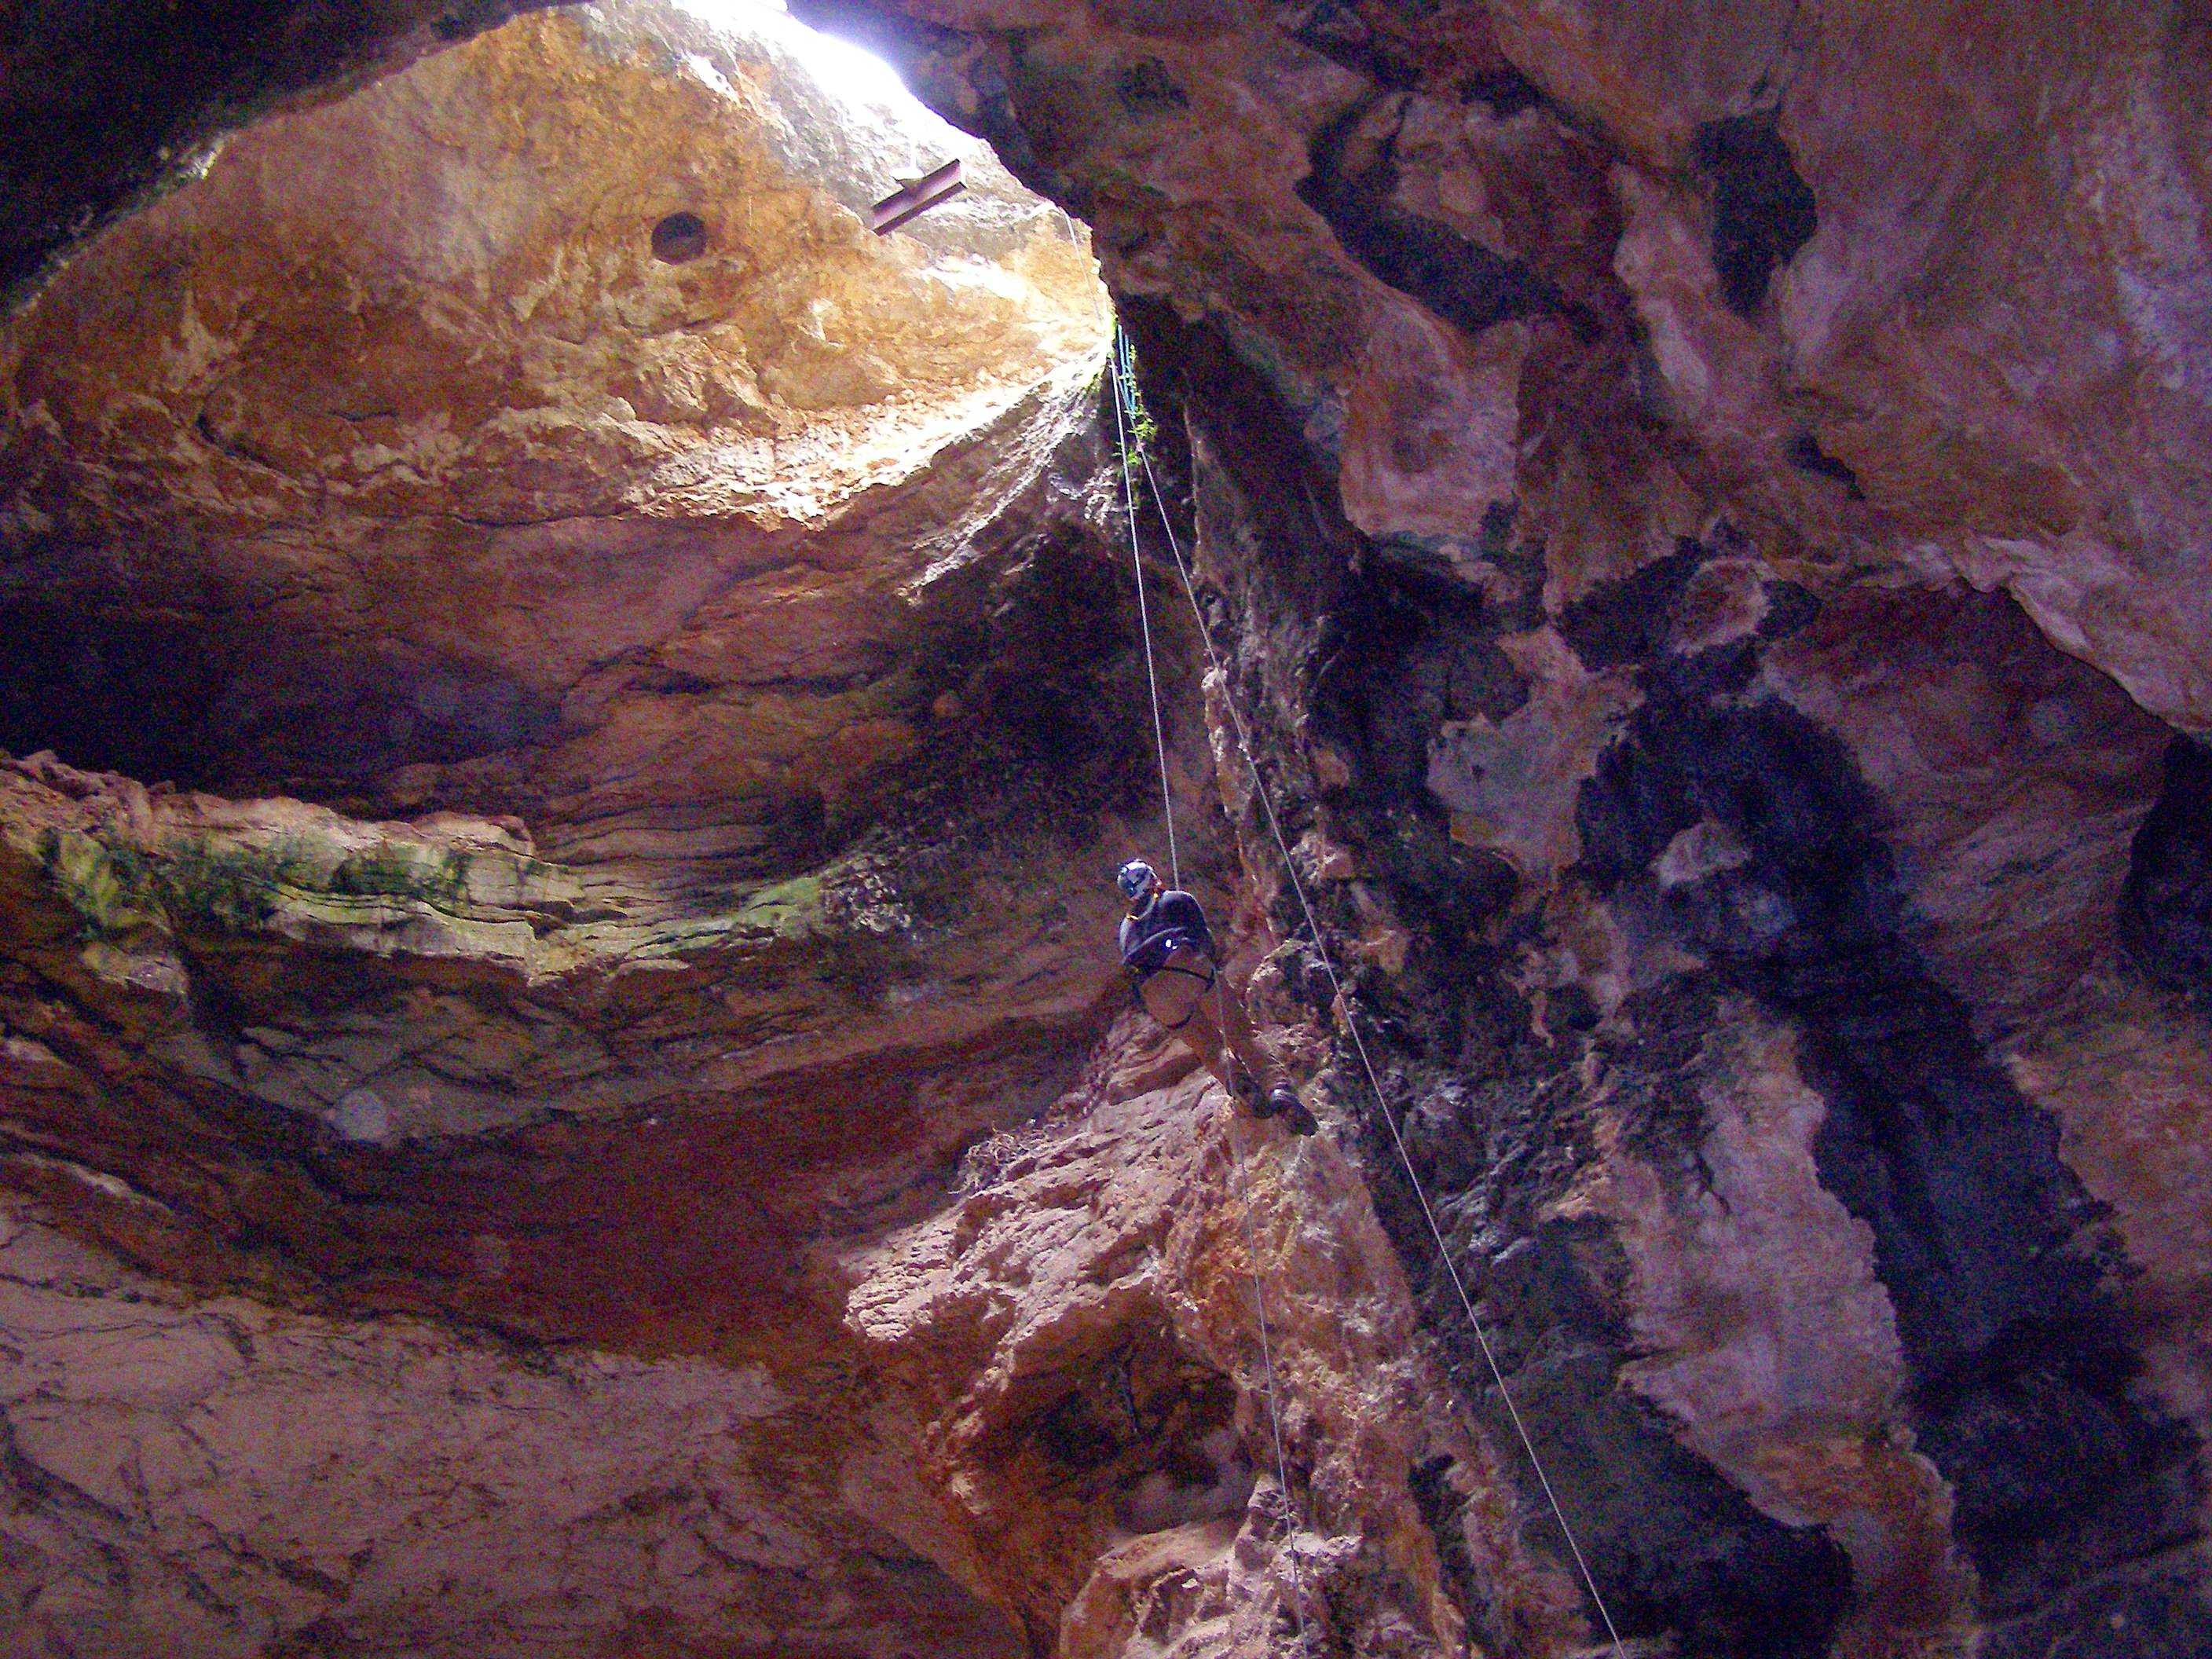 Bureau of Land Management cave specialist Bryan McKenzie rappels into Natural Trap Cave in north-central Wyoming during a cleanup expedition.